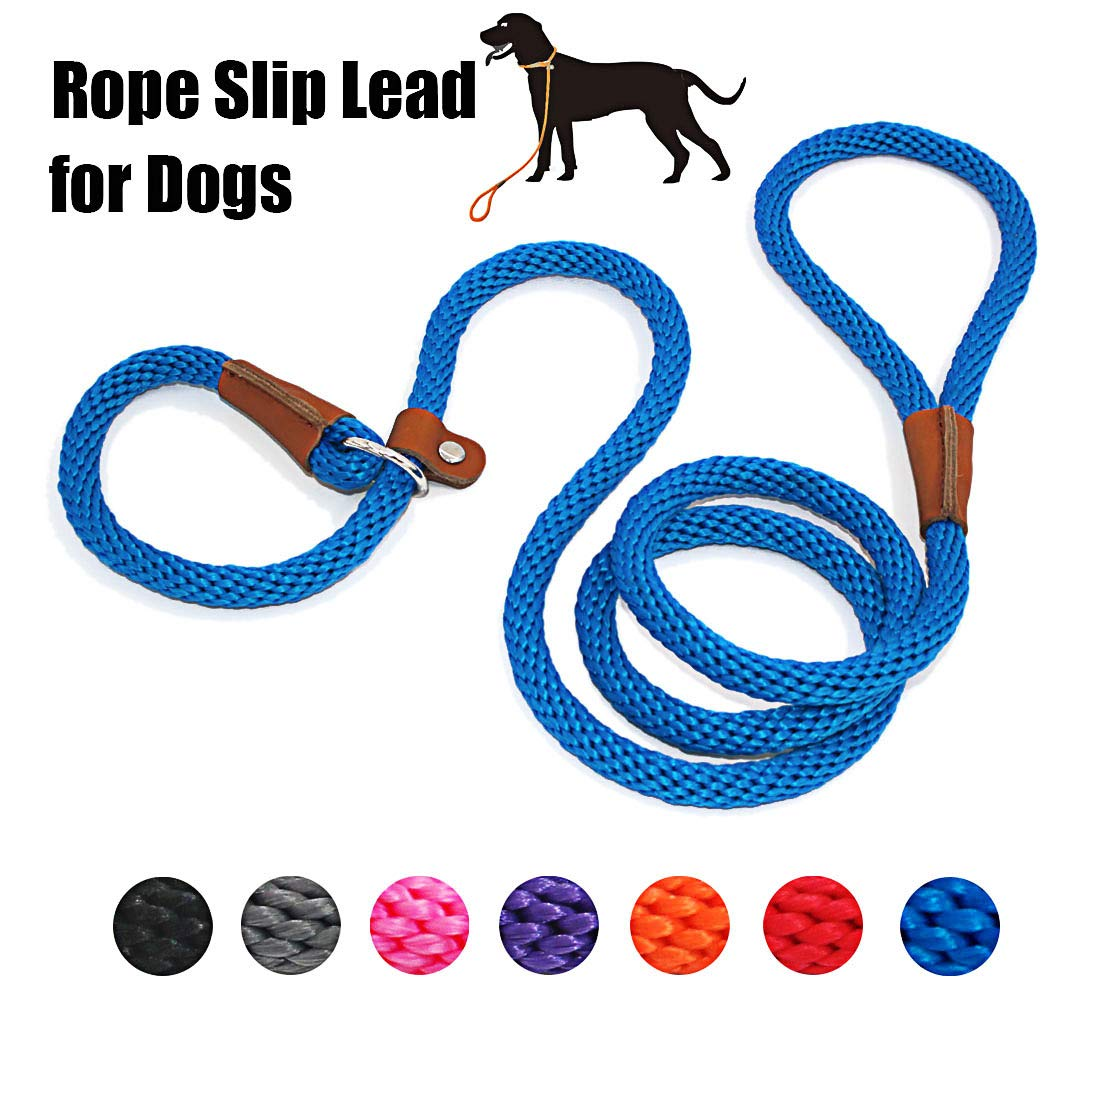 lynxking Dog Leash Rope Slip Leads Strong Heavy Duty No Pull Training Lead Leashes for Medium Large Dogs (5', Blue) by lynxking